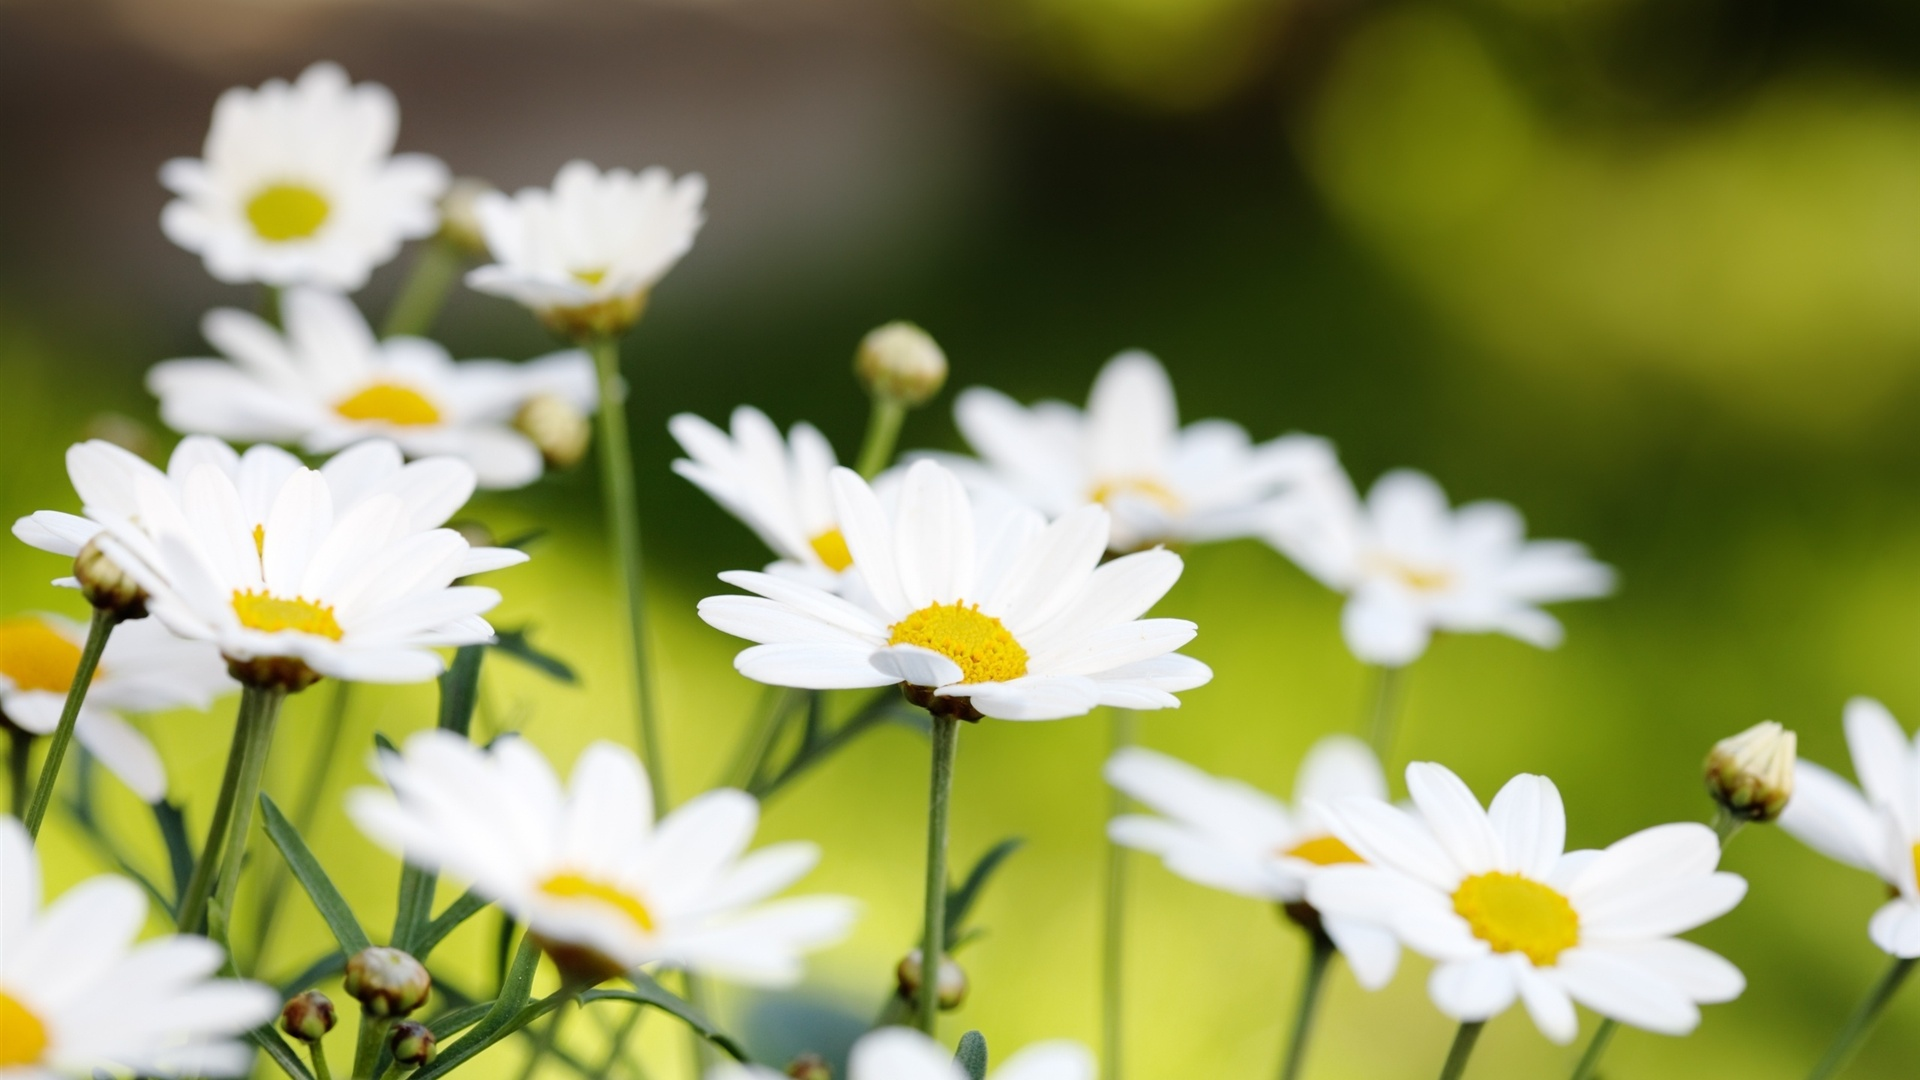 White daisies macro wallpaper - 1920x1080